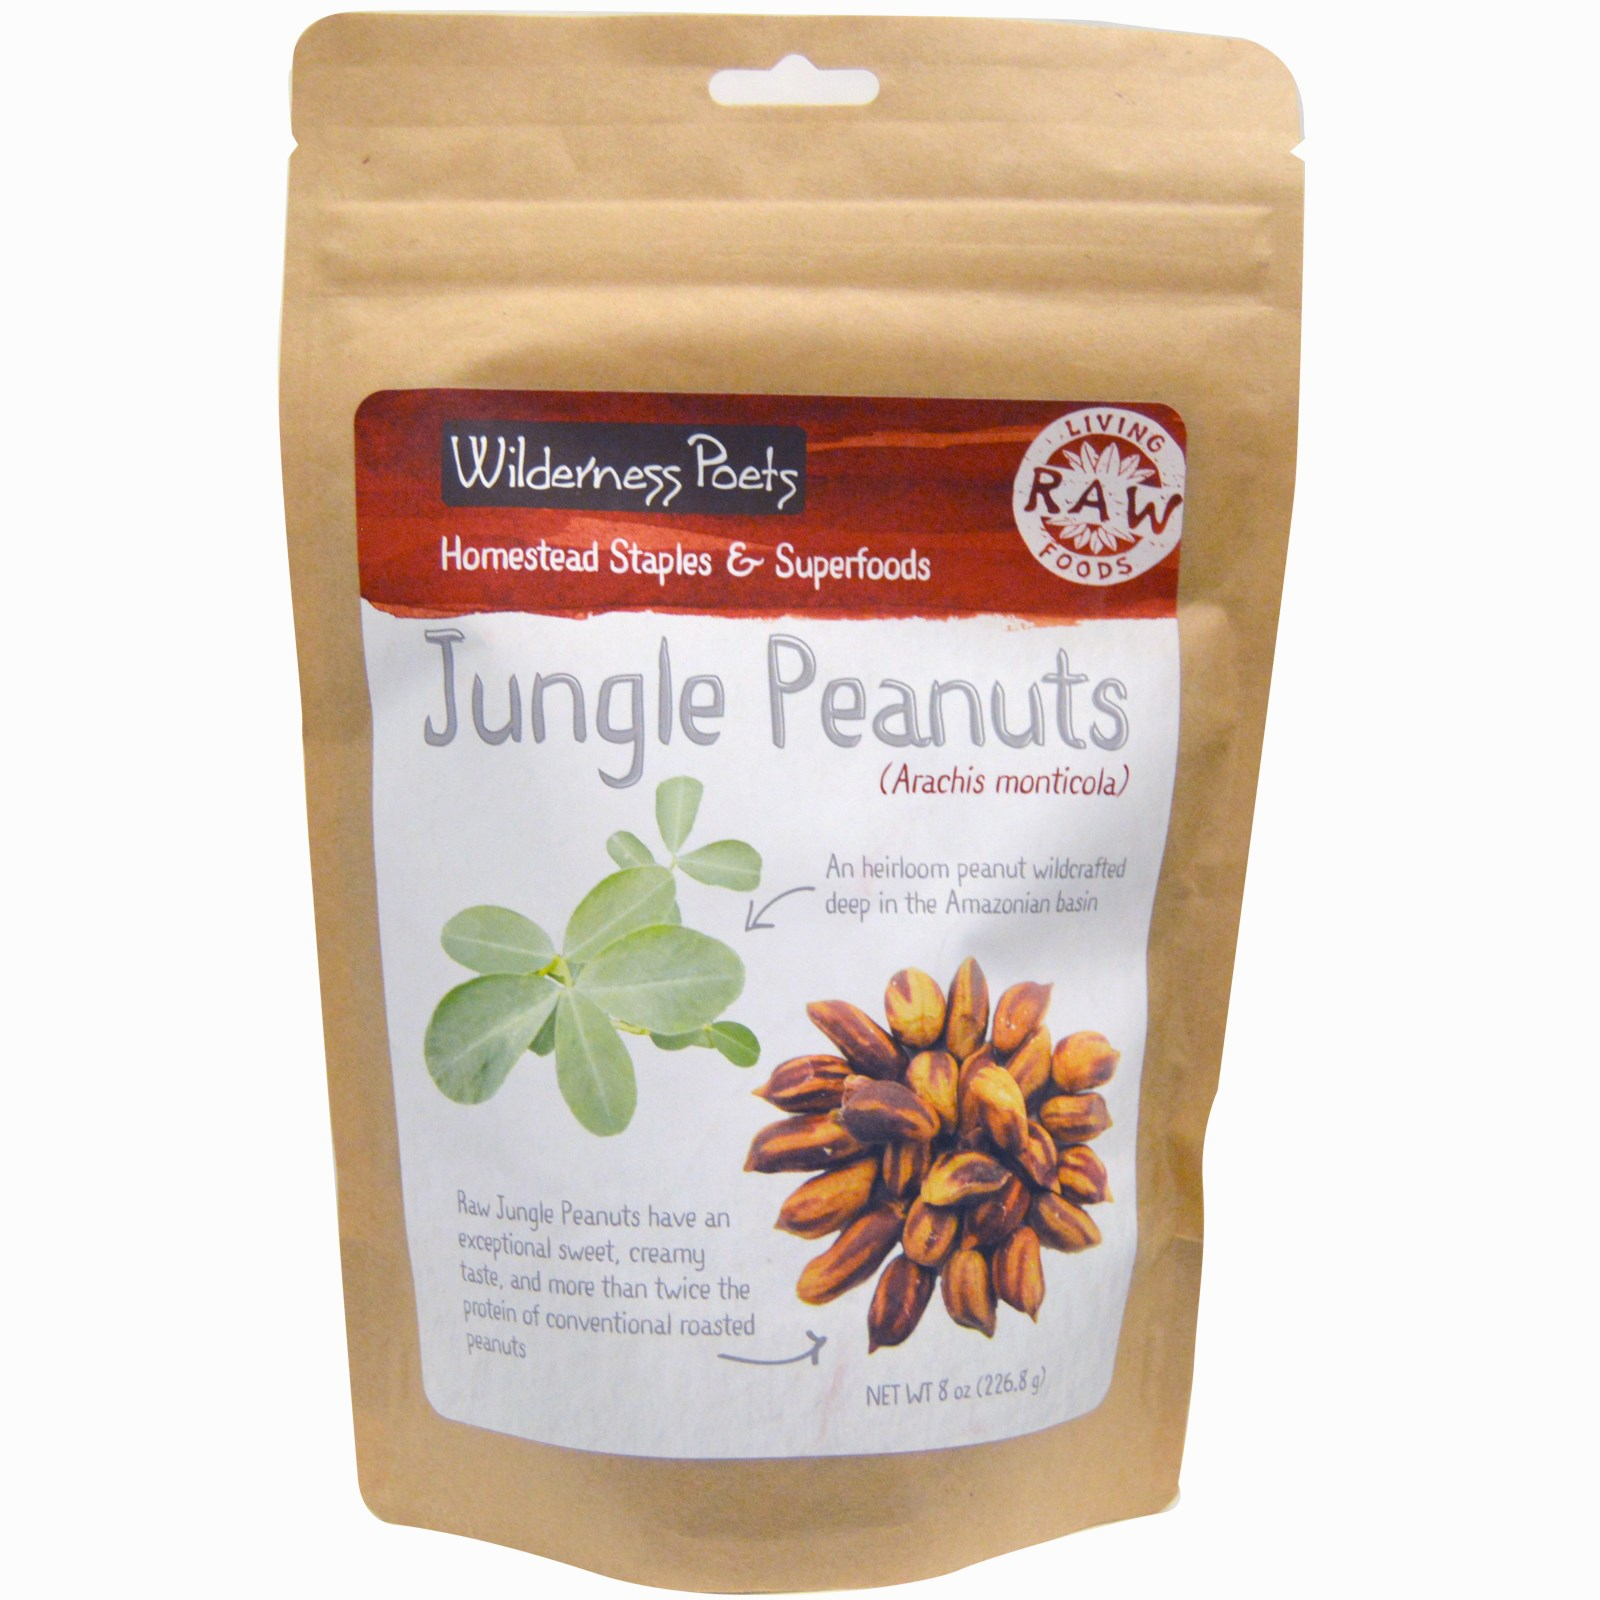 Wilderness Poets Jungle Peanuts Organic Raw 8 oz